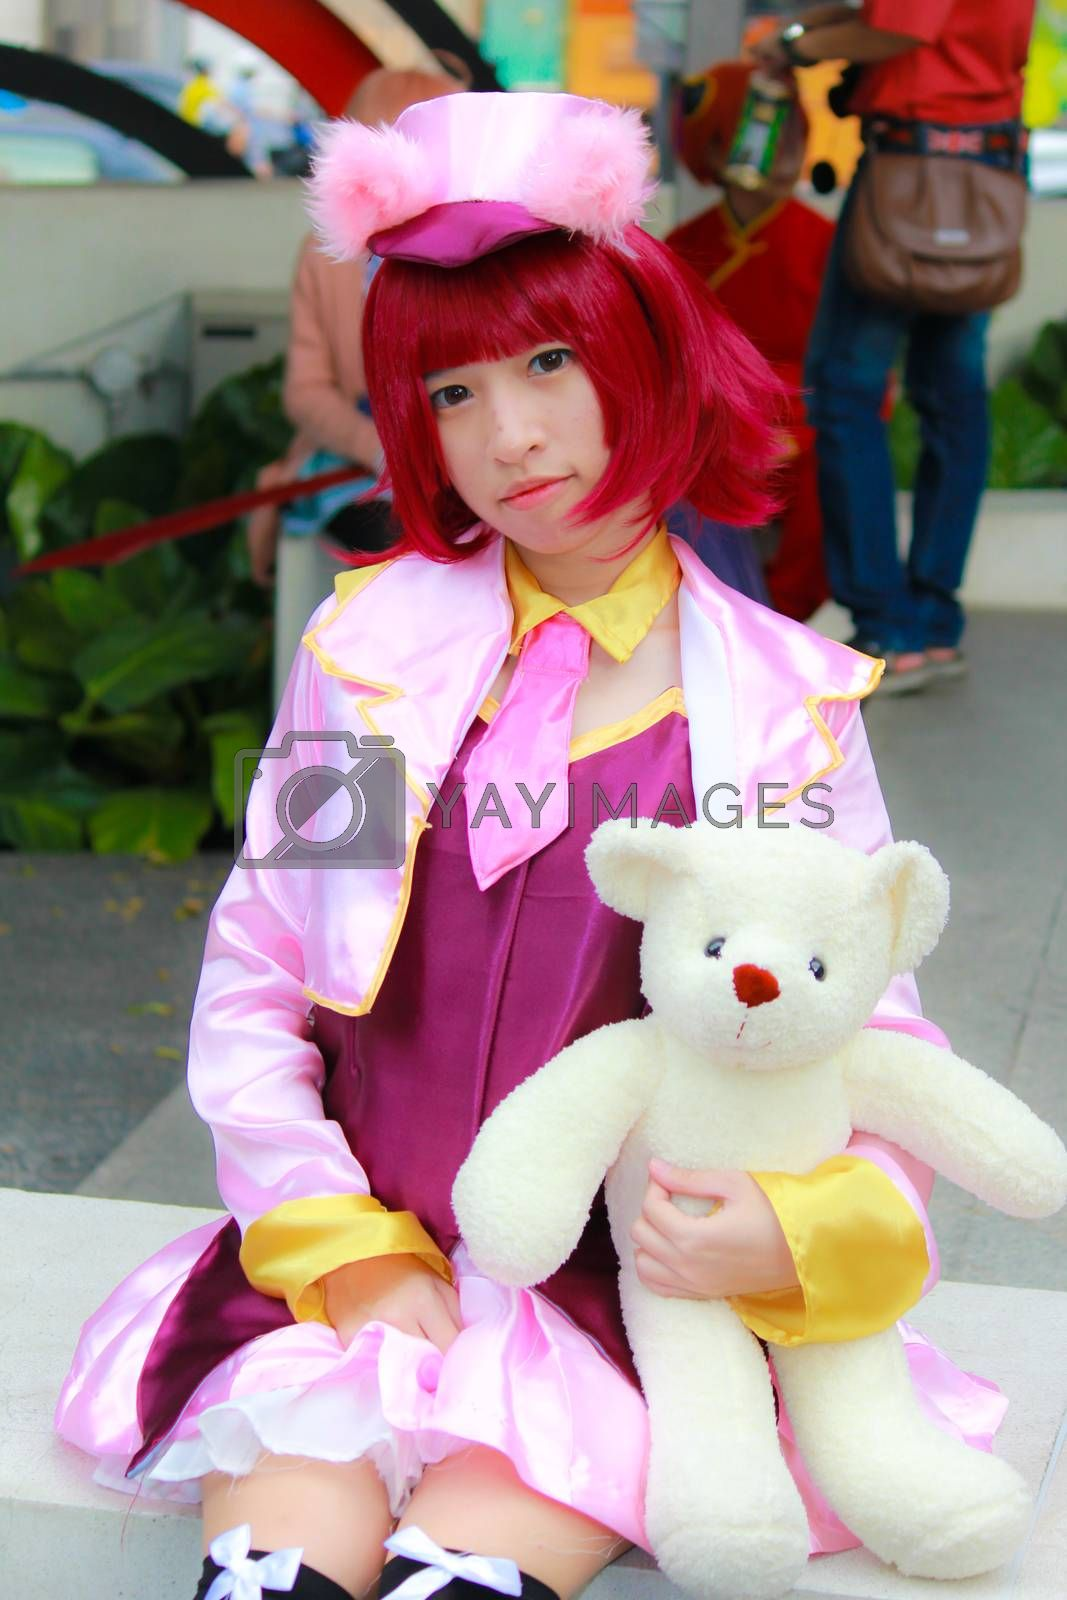 Royalty free image of Cosplay 96 by redthirteen